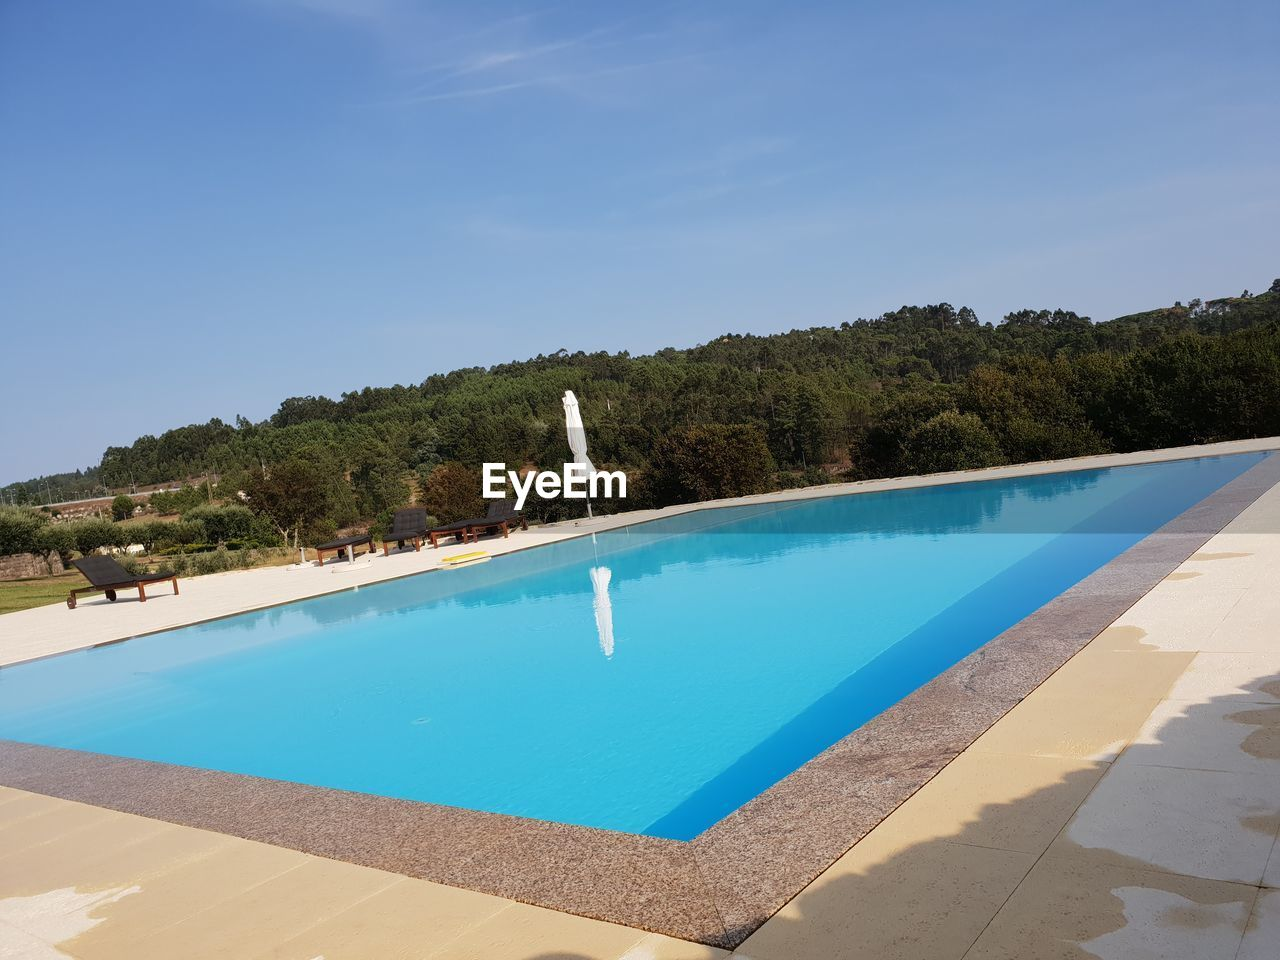 HIGH ANGLE VIEW OF SWIMMING POOL BY TREES AGAINST SKY